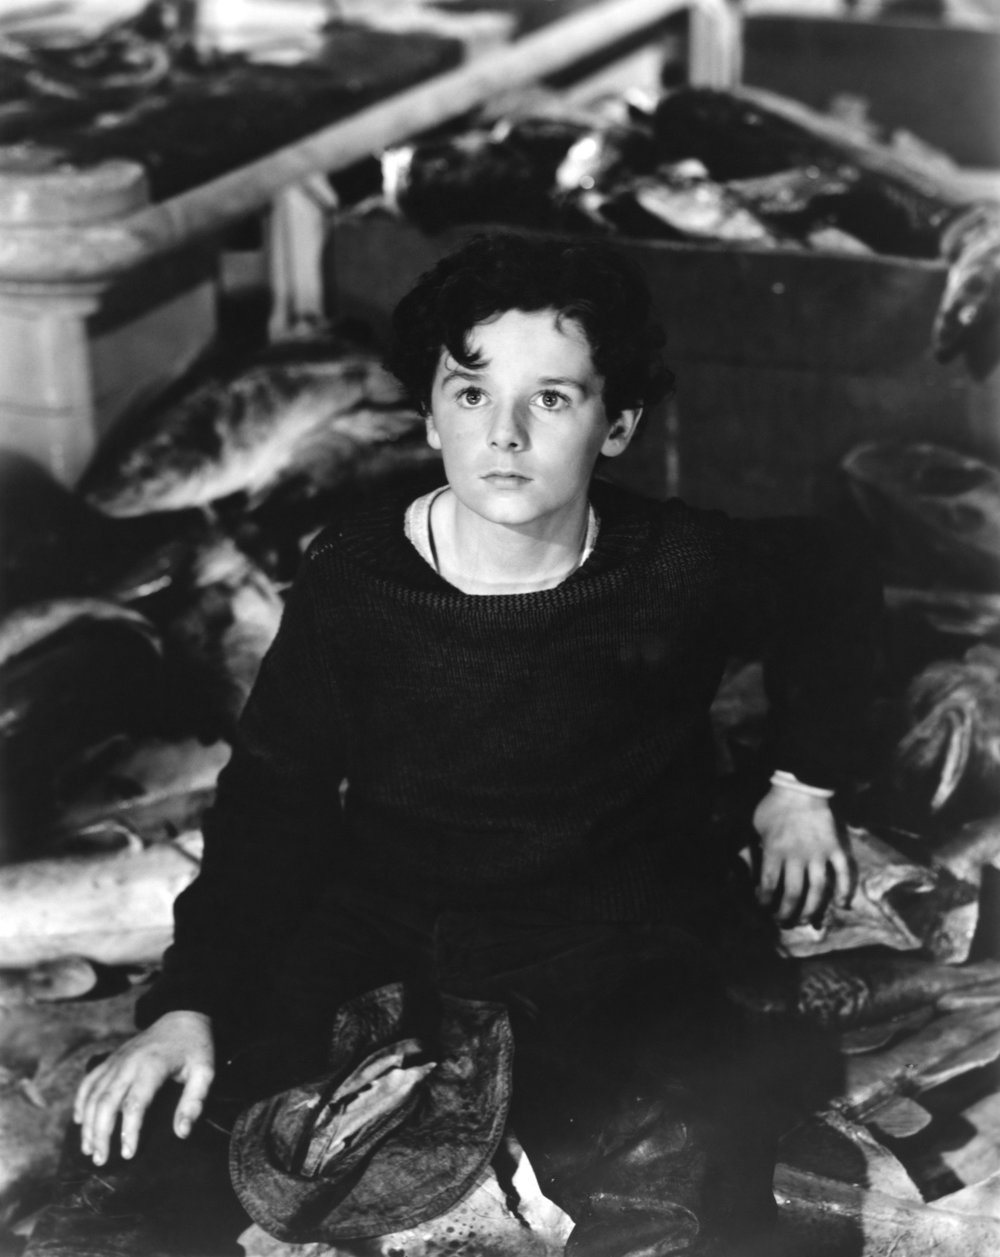 "The Face of Holden: Freddie Bartholomew in  Captains Courageous  (1937)    In chapter 13 of  The Catcher in the Rye , when Holden is talking with a prostitute named Sunny, she says that Holden looks like the boy who fell off the boat in a movie she saw.   That movie, as identified by Peter Beidler in his book  A Reader's Companion to J.D. Salinger's ""The Catcher in the Rye"" , is   Captains Courageous   (1937) starring Spencer Tracy.   The boy who fell off the boat was played by child-actor Freddie Bartholomew. Based on the reference from the book, Bartholomew was Salinger's model for Holden Caulfield.    Here's a picture of the actor closer to Holden's age .    Is this the face you had in mind? Let me know in the comments."